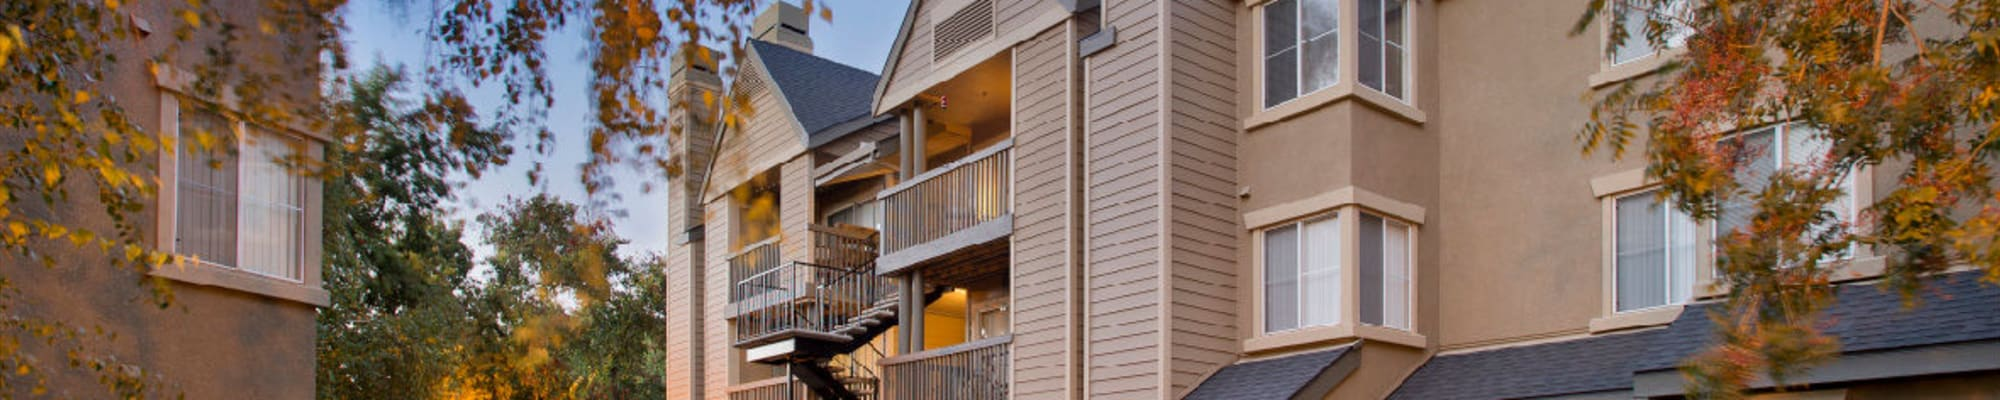 Resident perks at Mill Springs Park Apartment Homes in Livermore, California